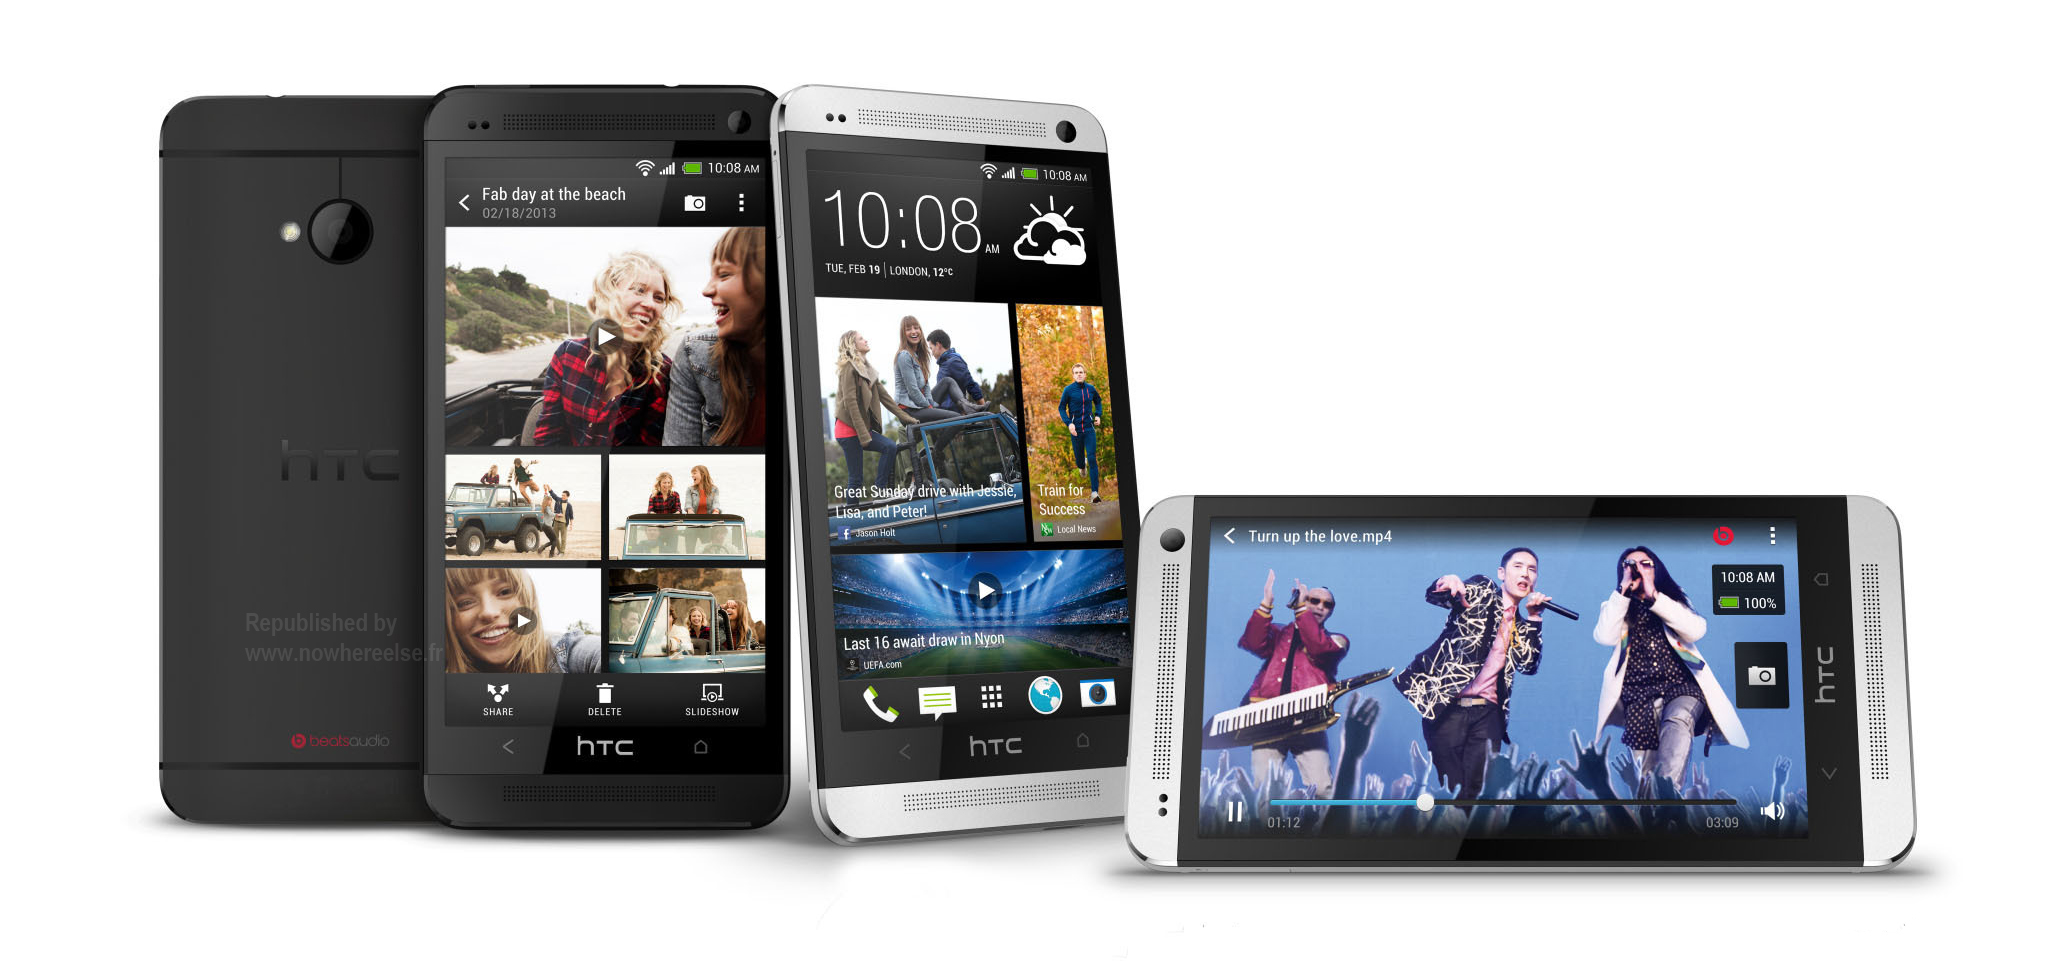 htc-one-hires-leak